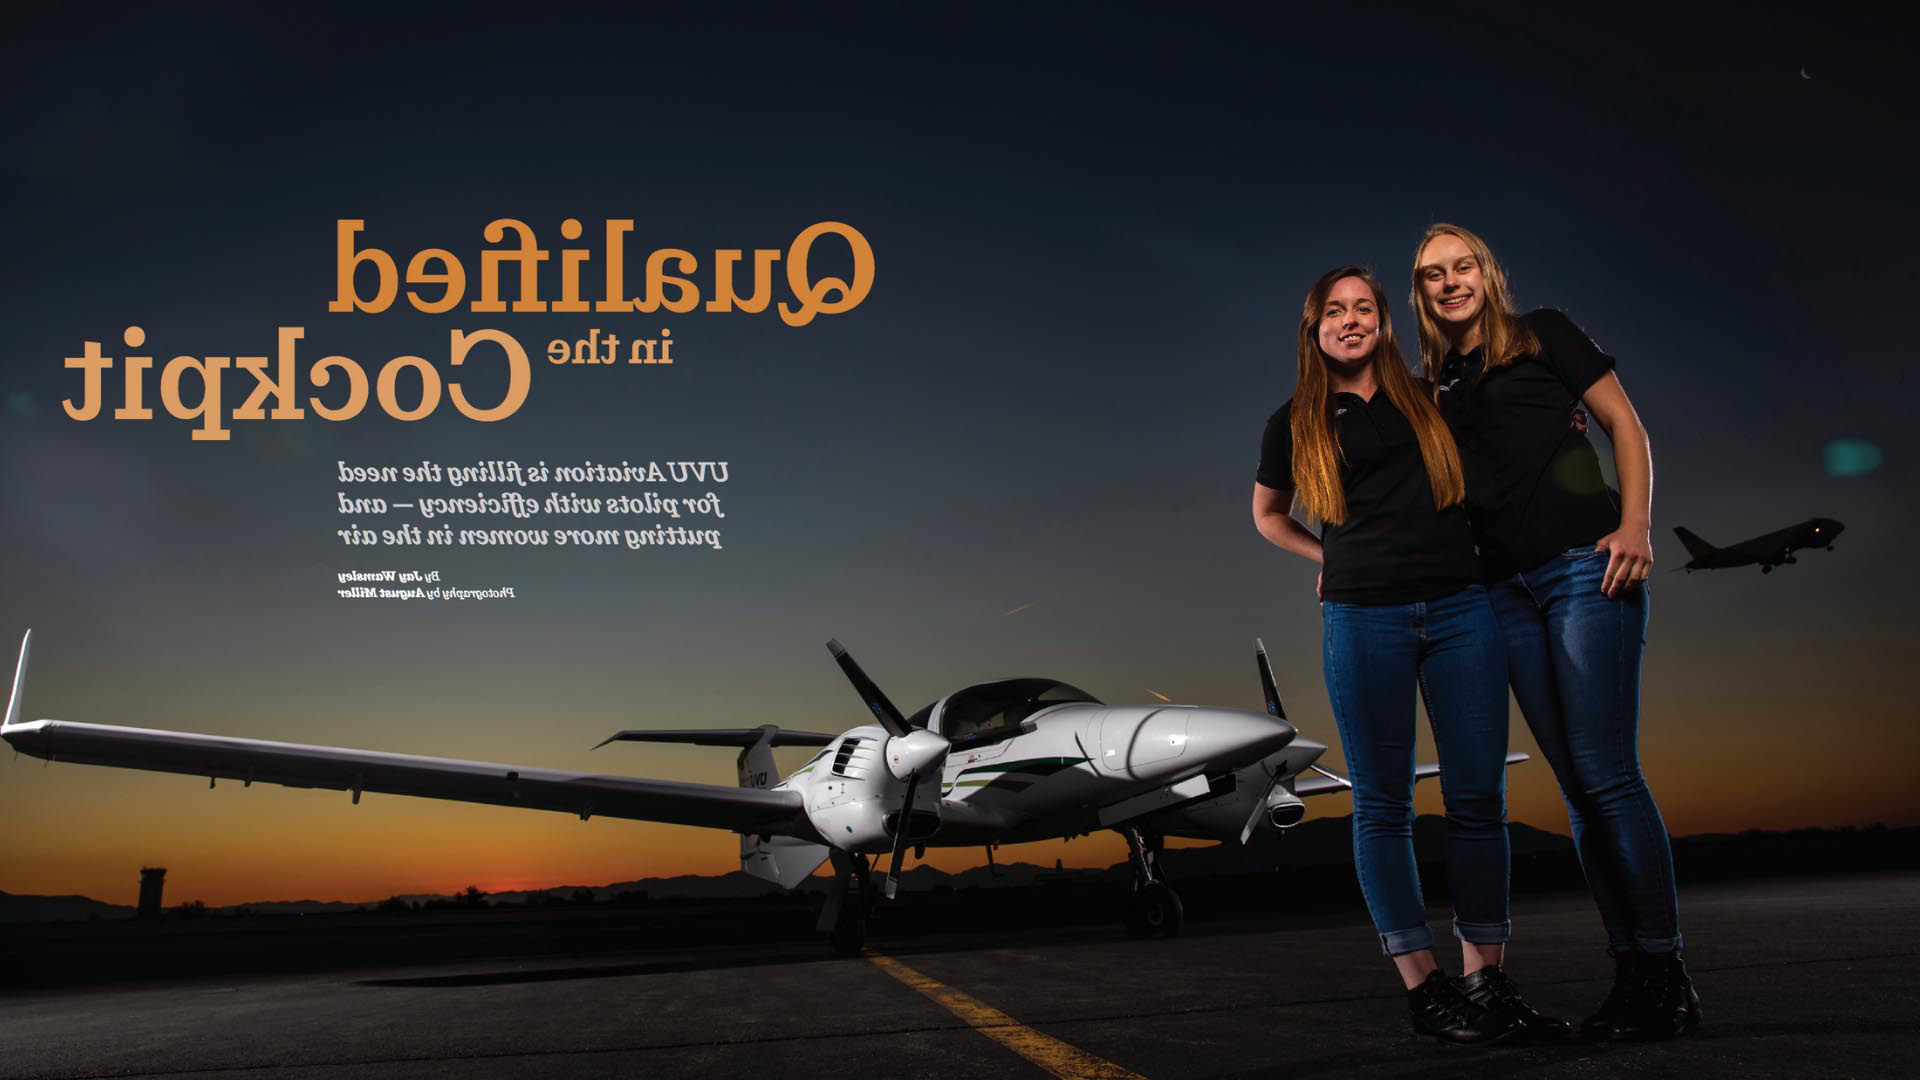 aviation uvu utah valley university uvu magazine